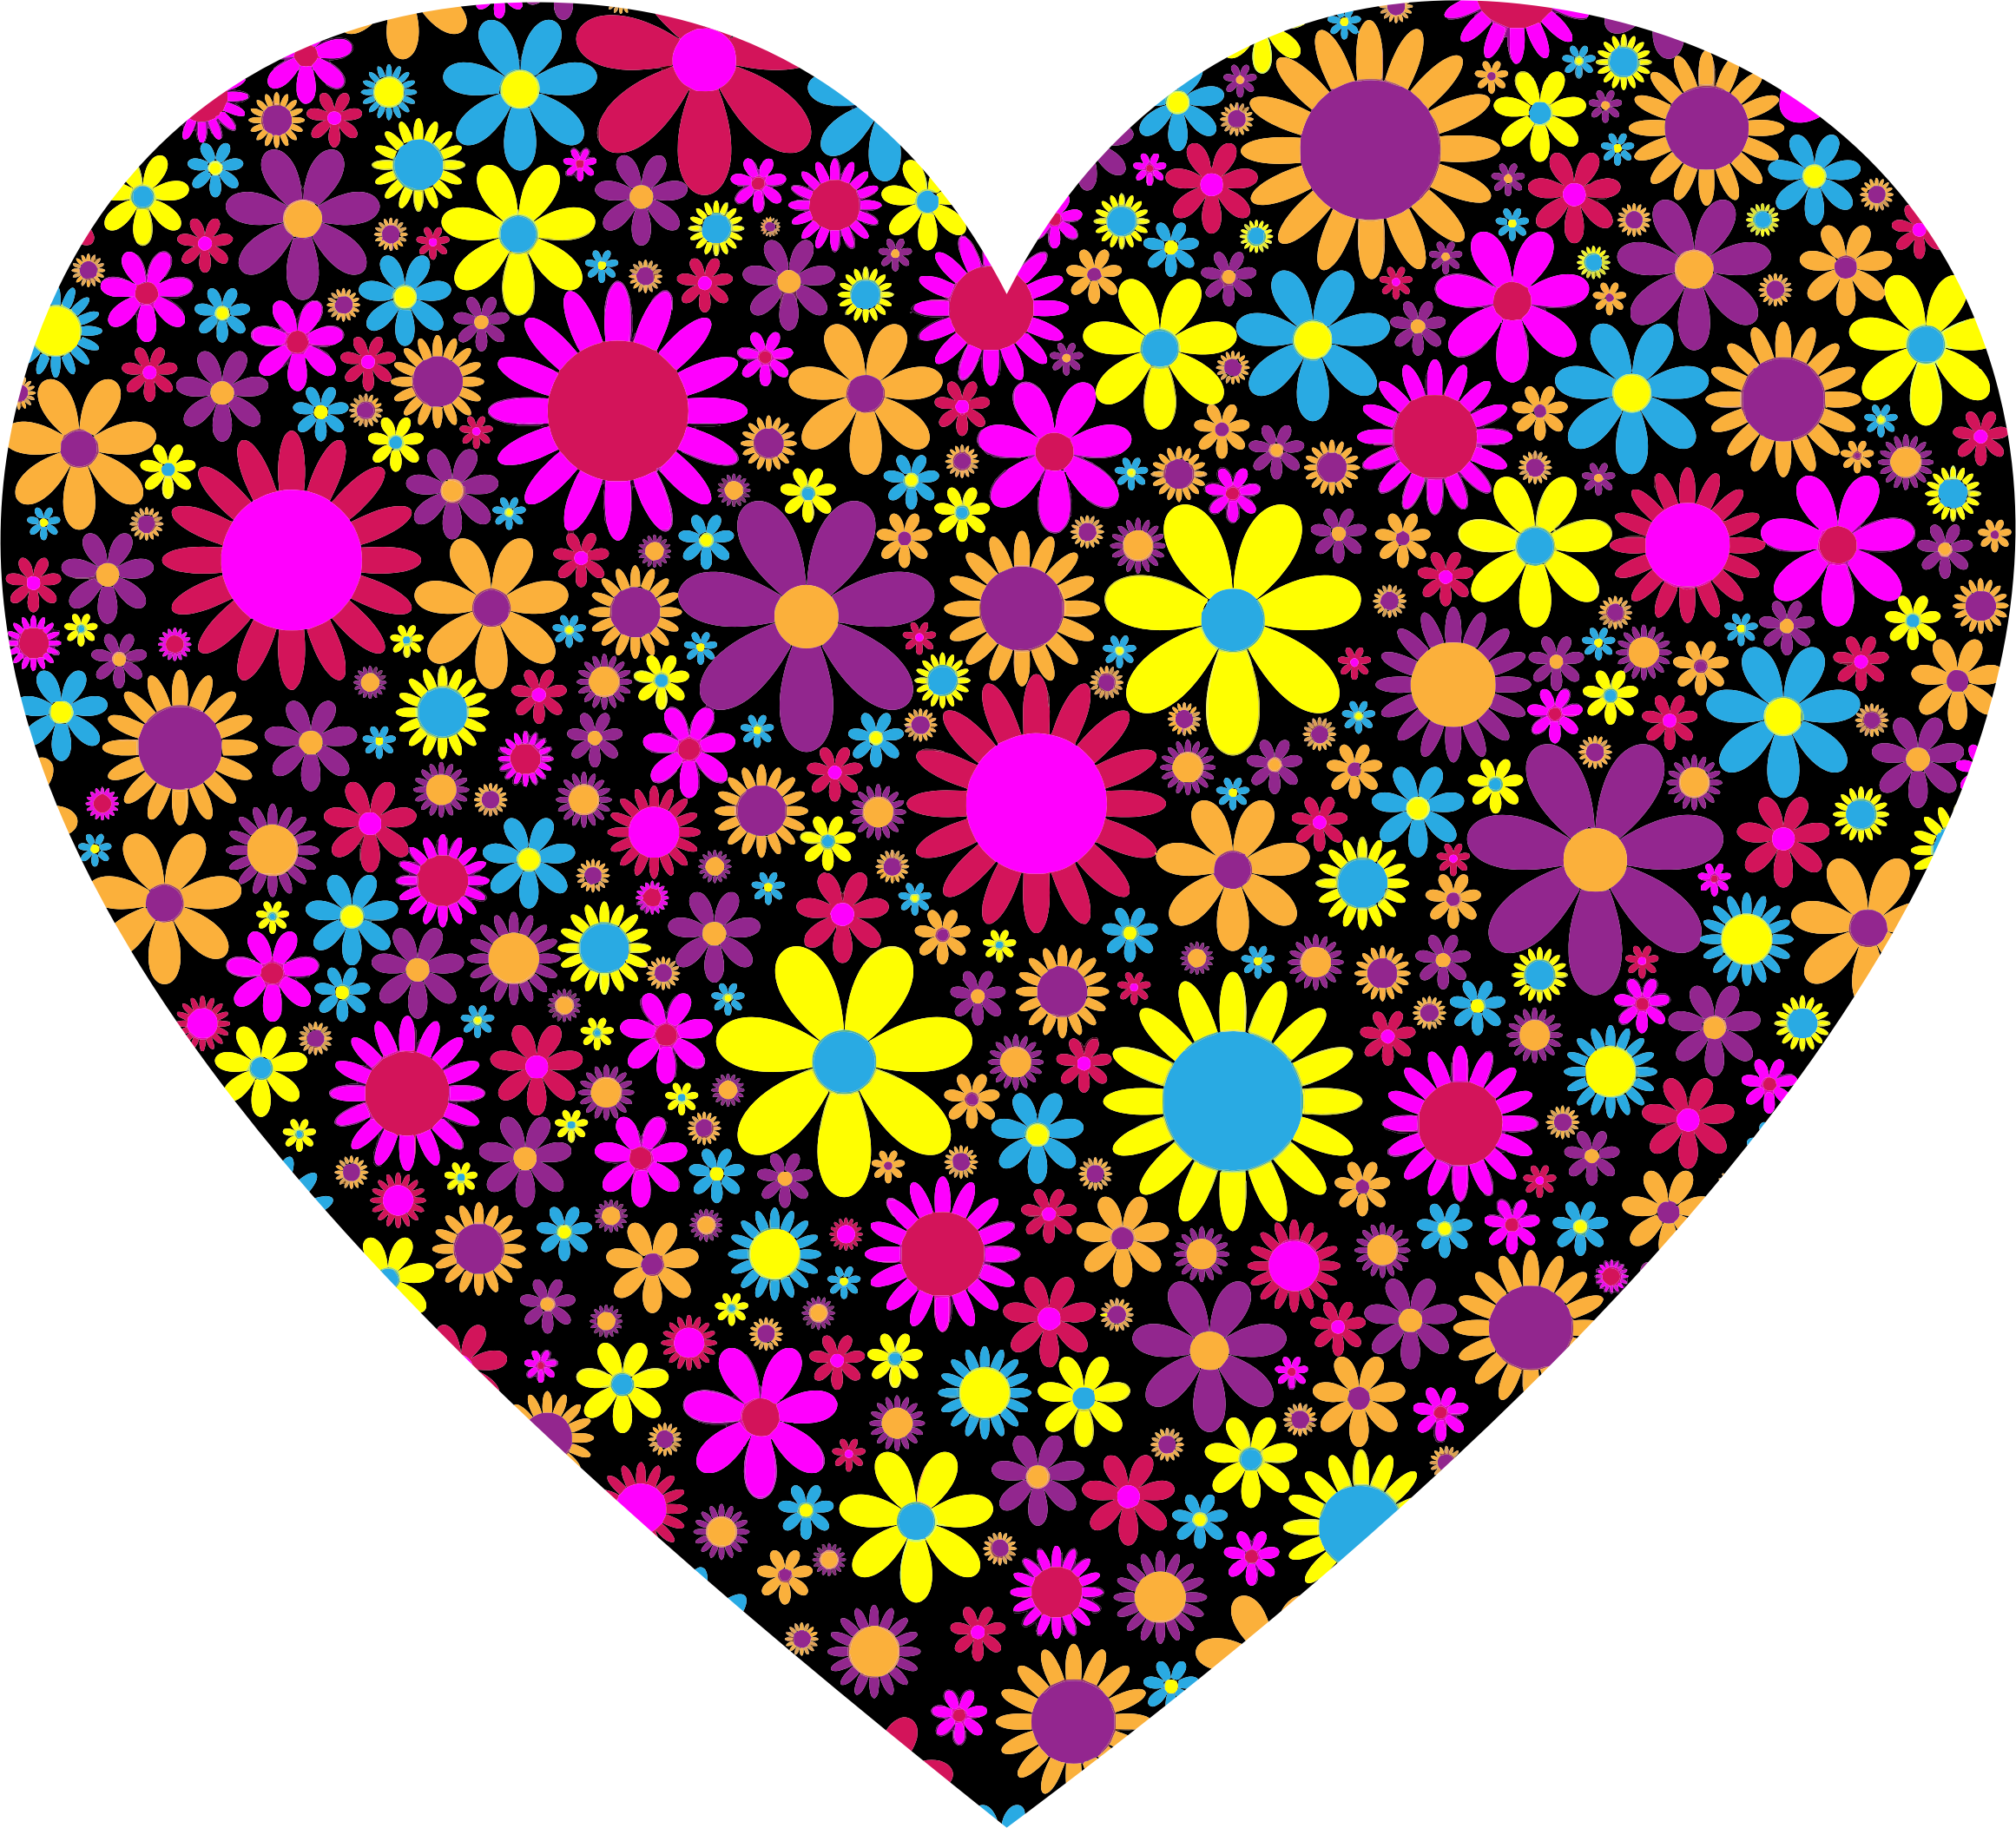 Floral Heart 2 by GDJ